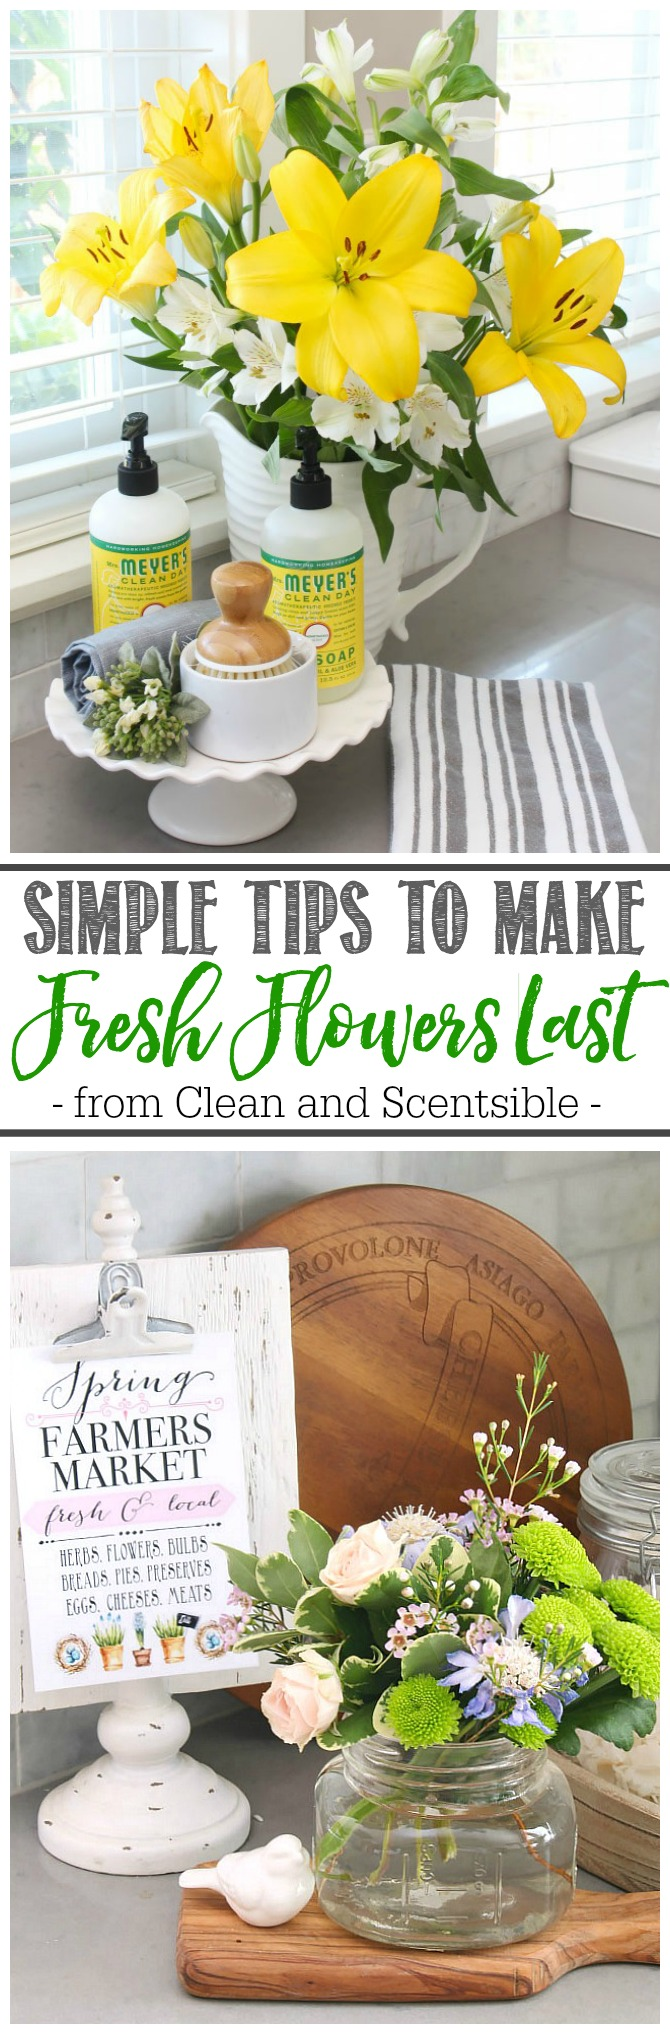 How to make fresh flowers last longer. Pretty flower arrangements with various flowers and greenery.